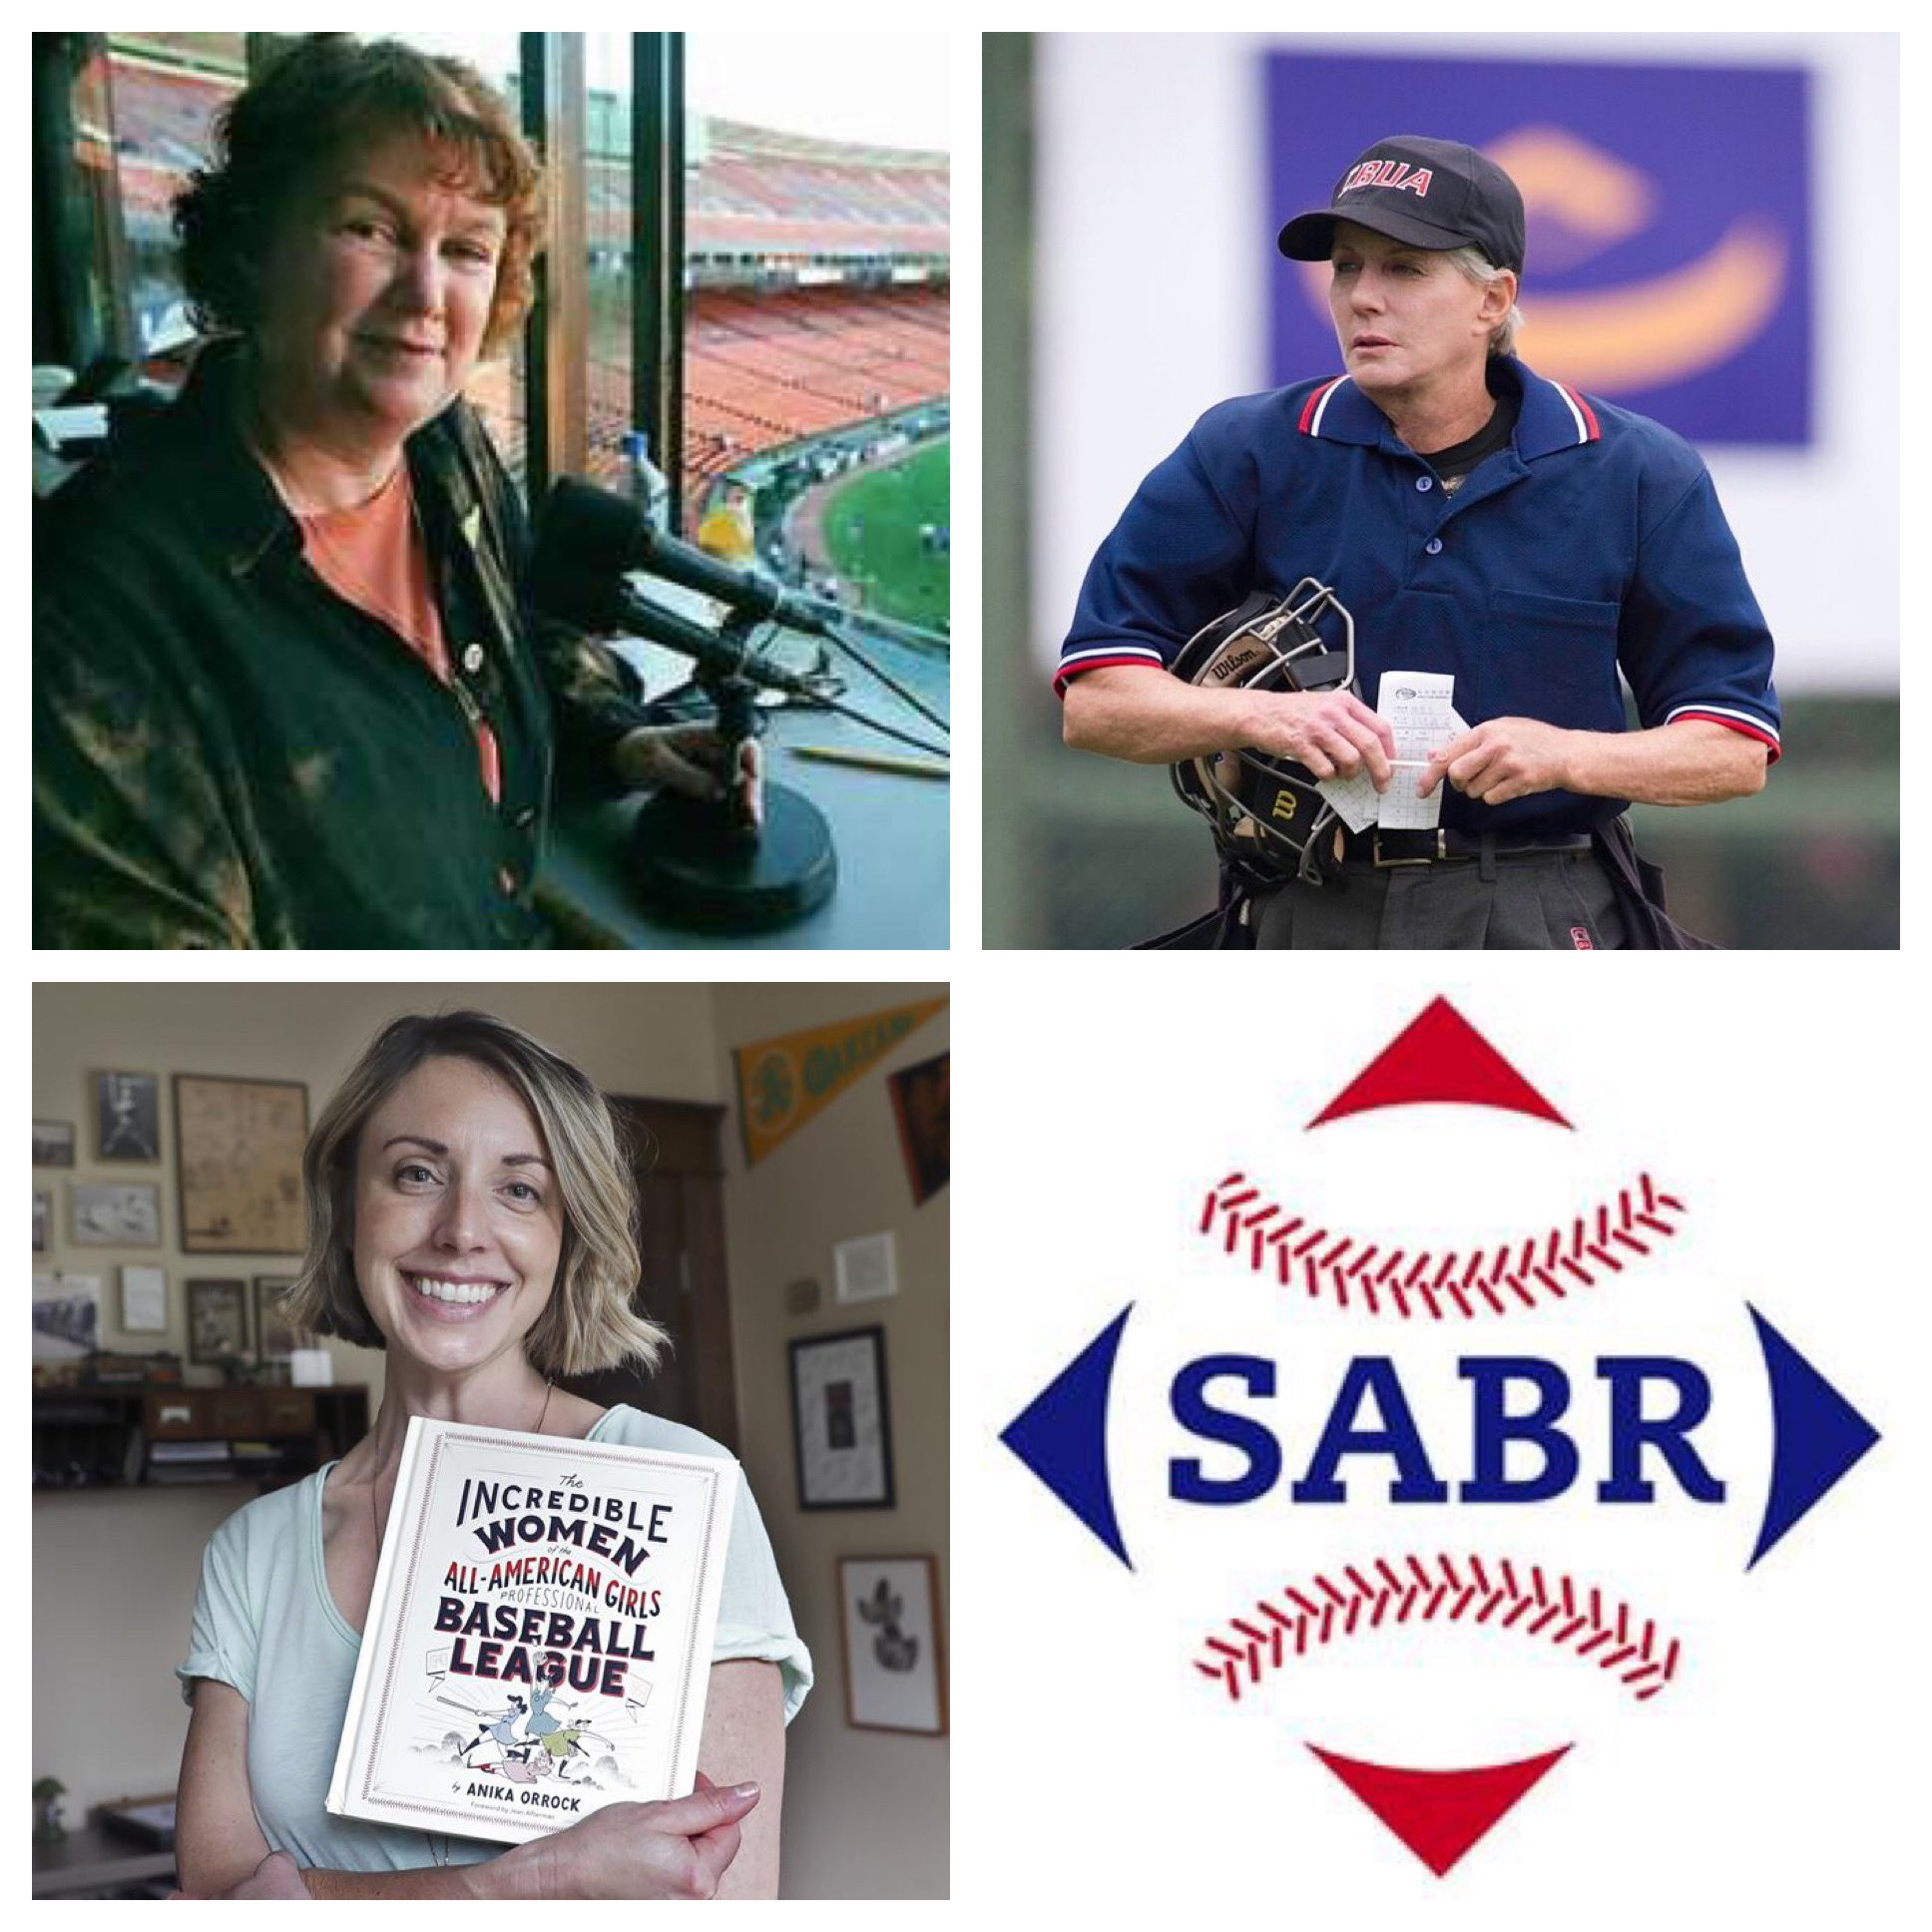 Sherry Davis, San Francisco Giants public address announcer from 1993 to 1999; Perry Barber, professional umpire; and Anika Orrock, author and illustrator.